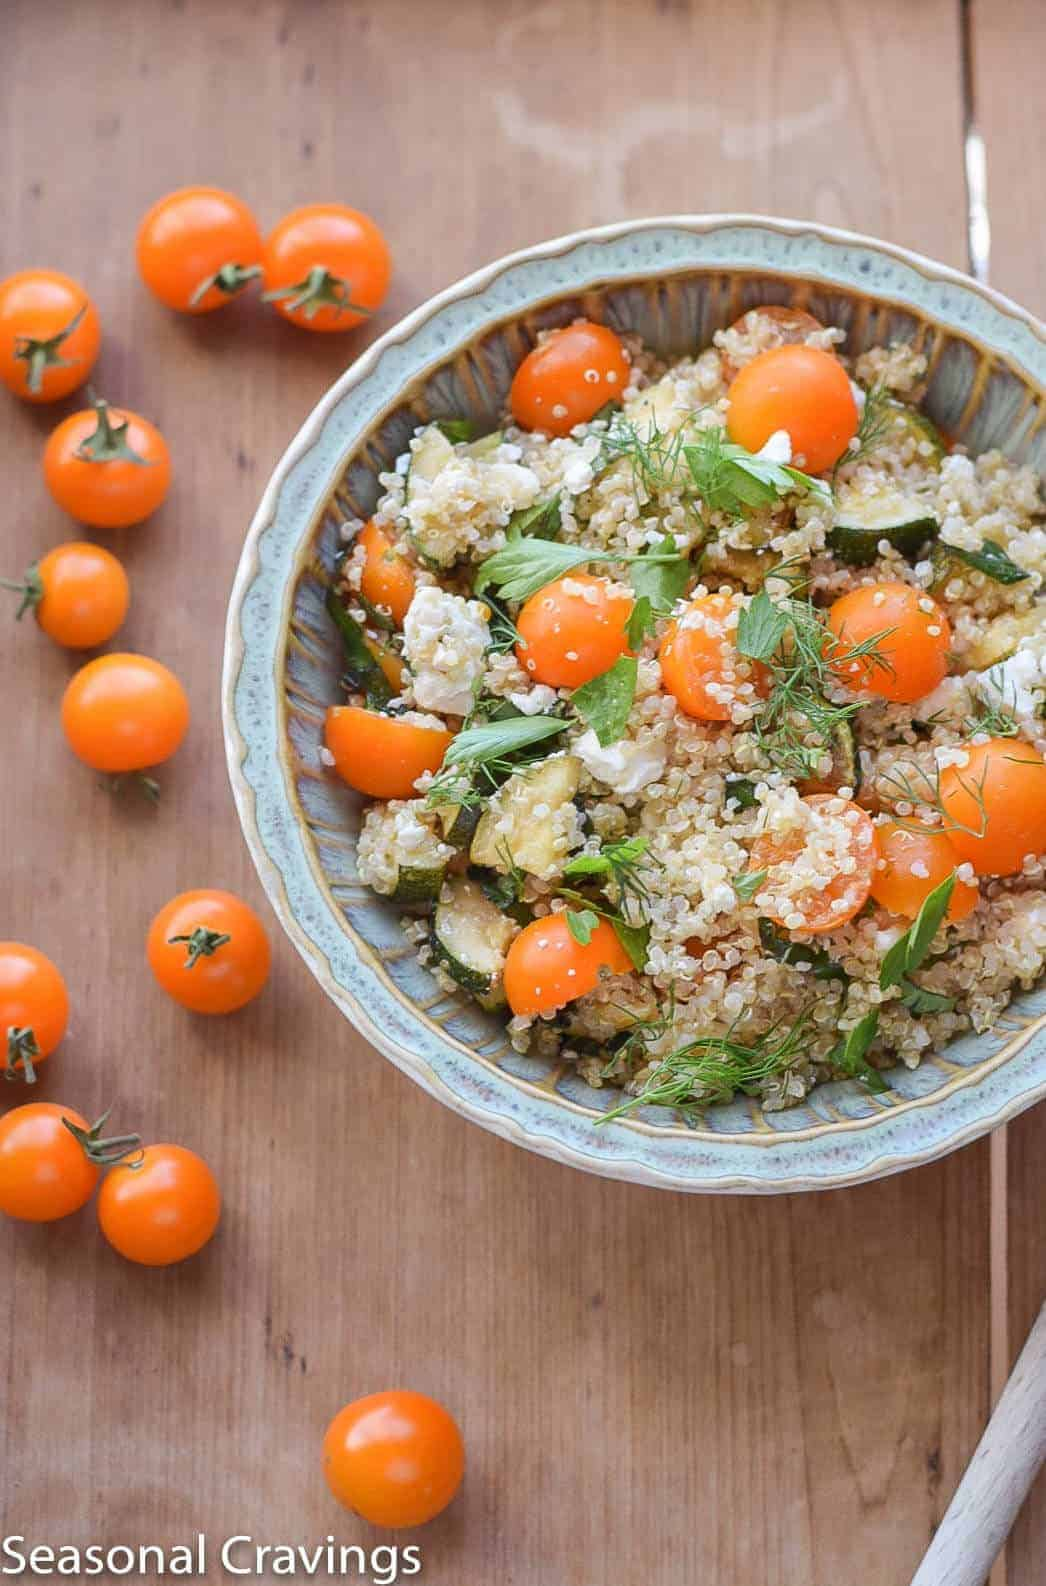 Quinoa with Zucchini and Tomatoes in a blue bowl with orange tomatoes on the side